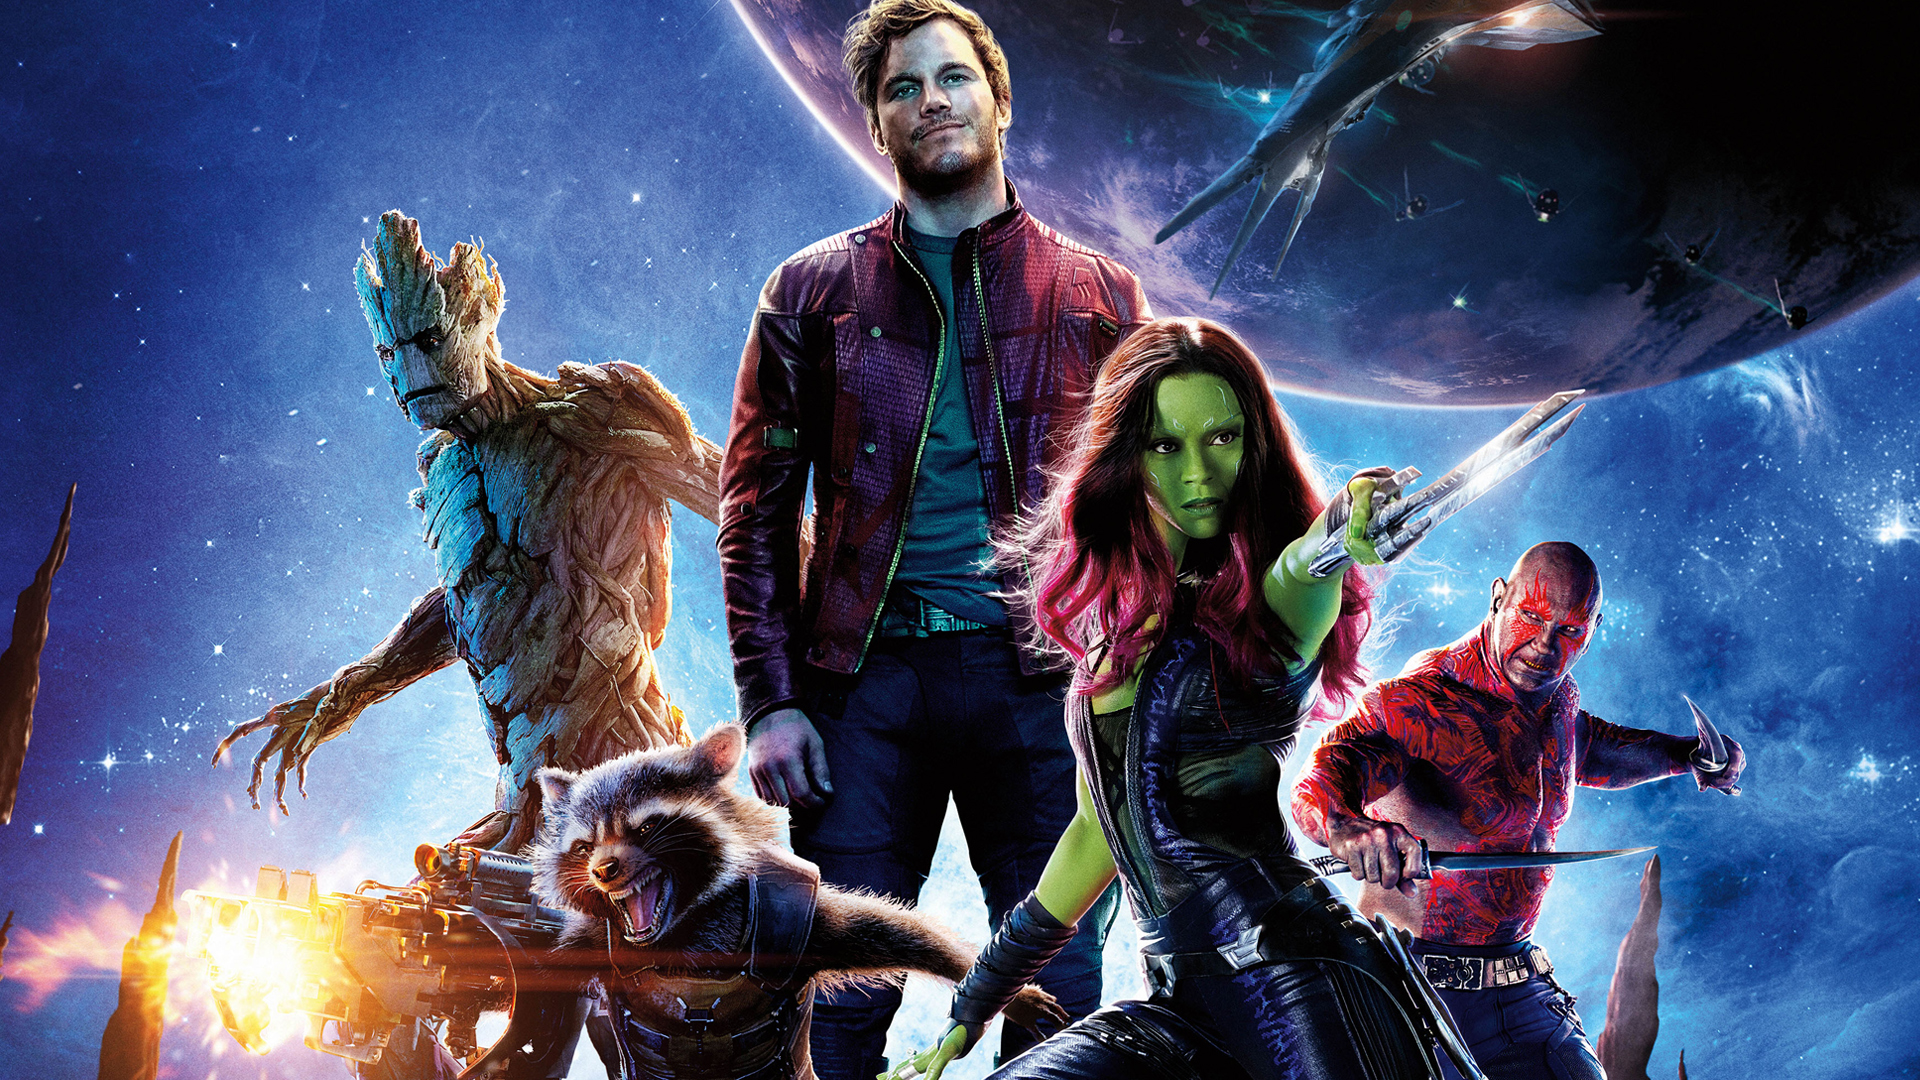 This free cool guardians of the galaxy hd movie wallpaper backgrounds